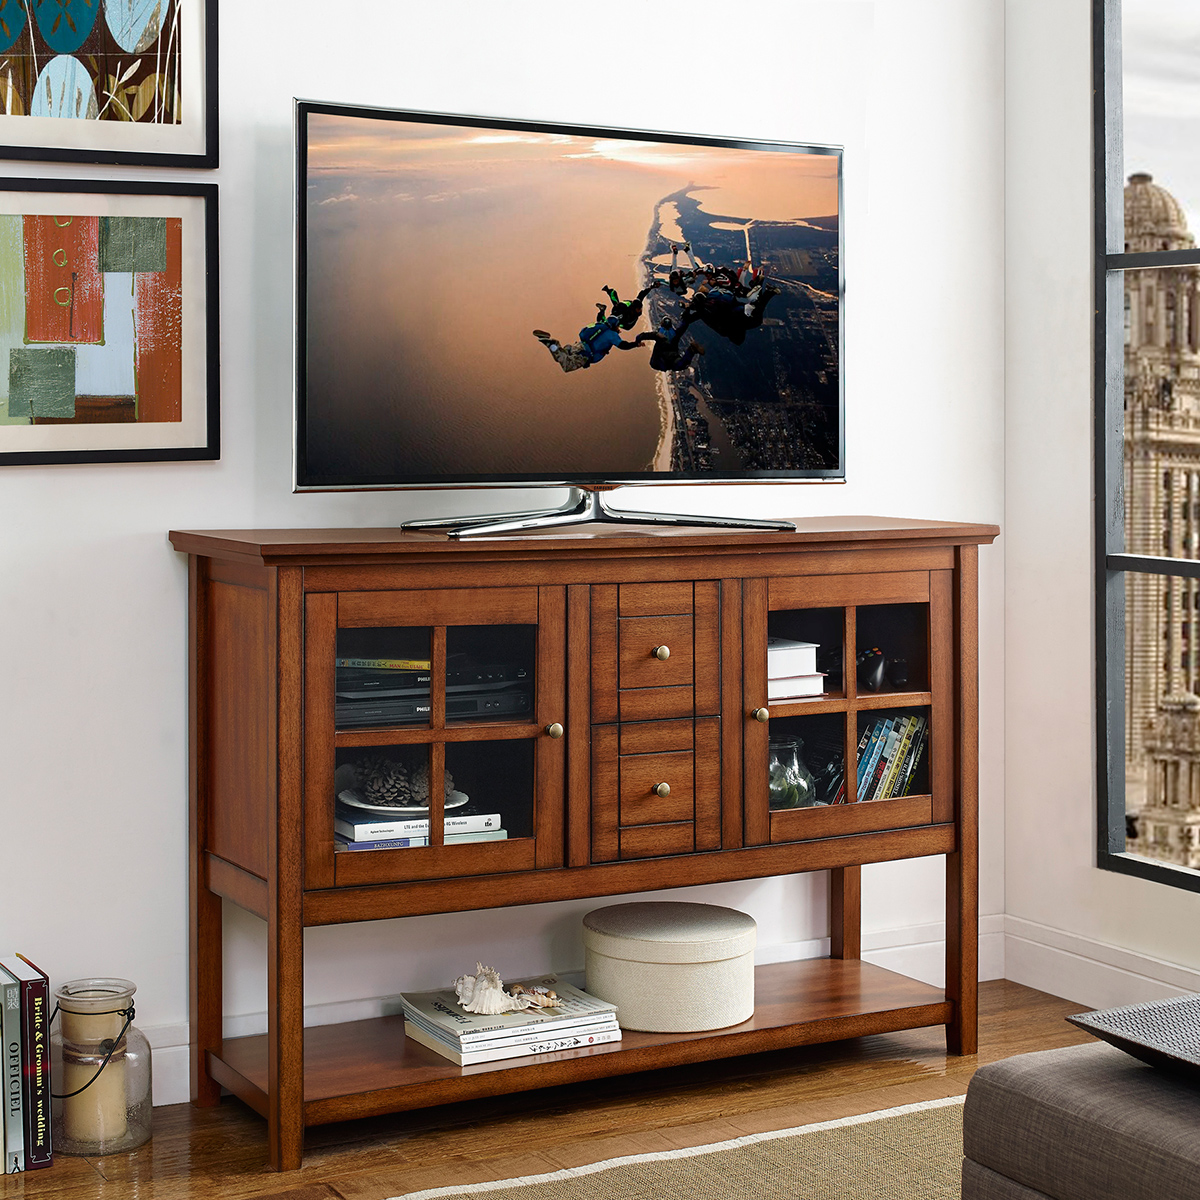 Walker Edison W52c4ctrb 52 Quot Wood Console Table Tv Stand In